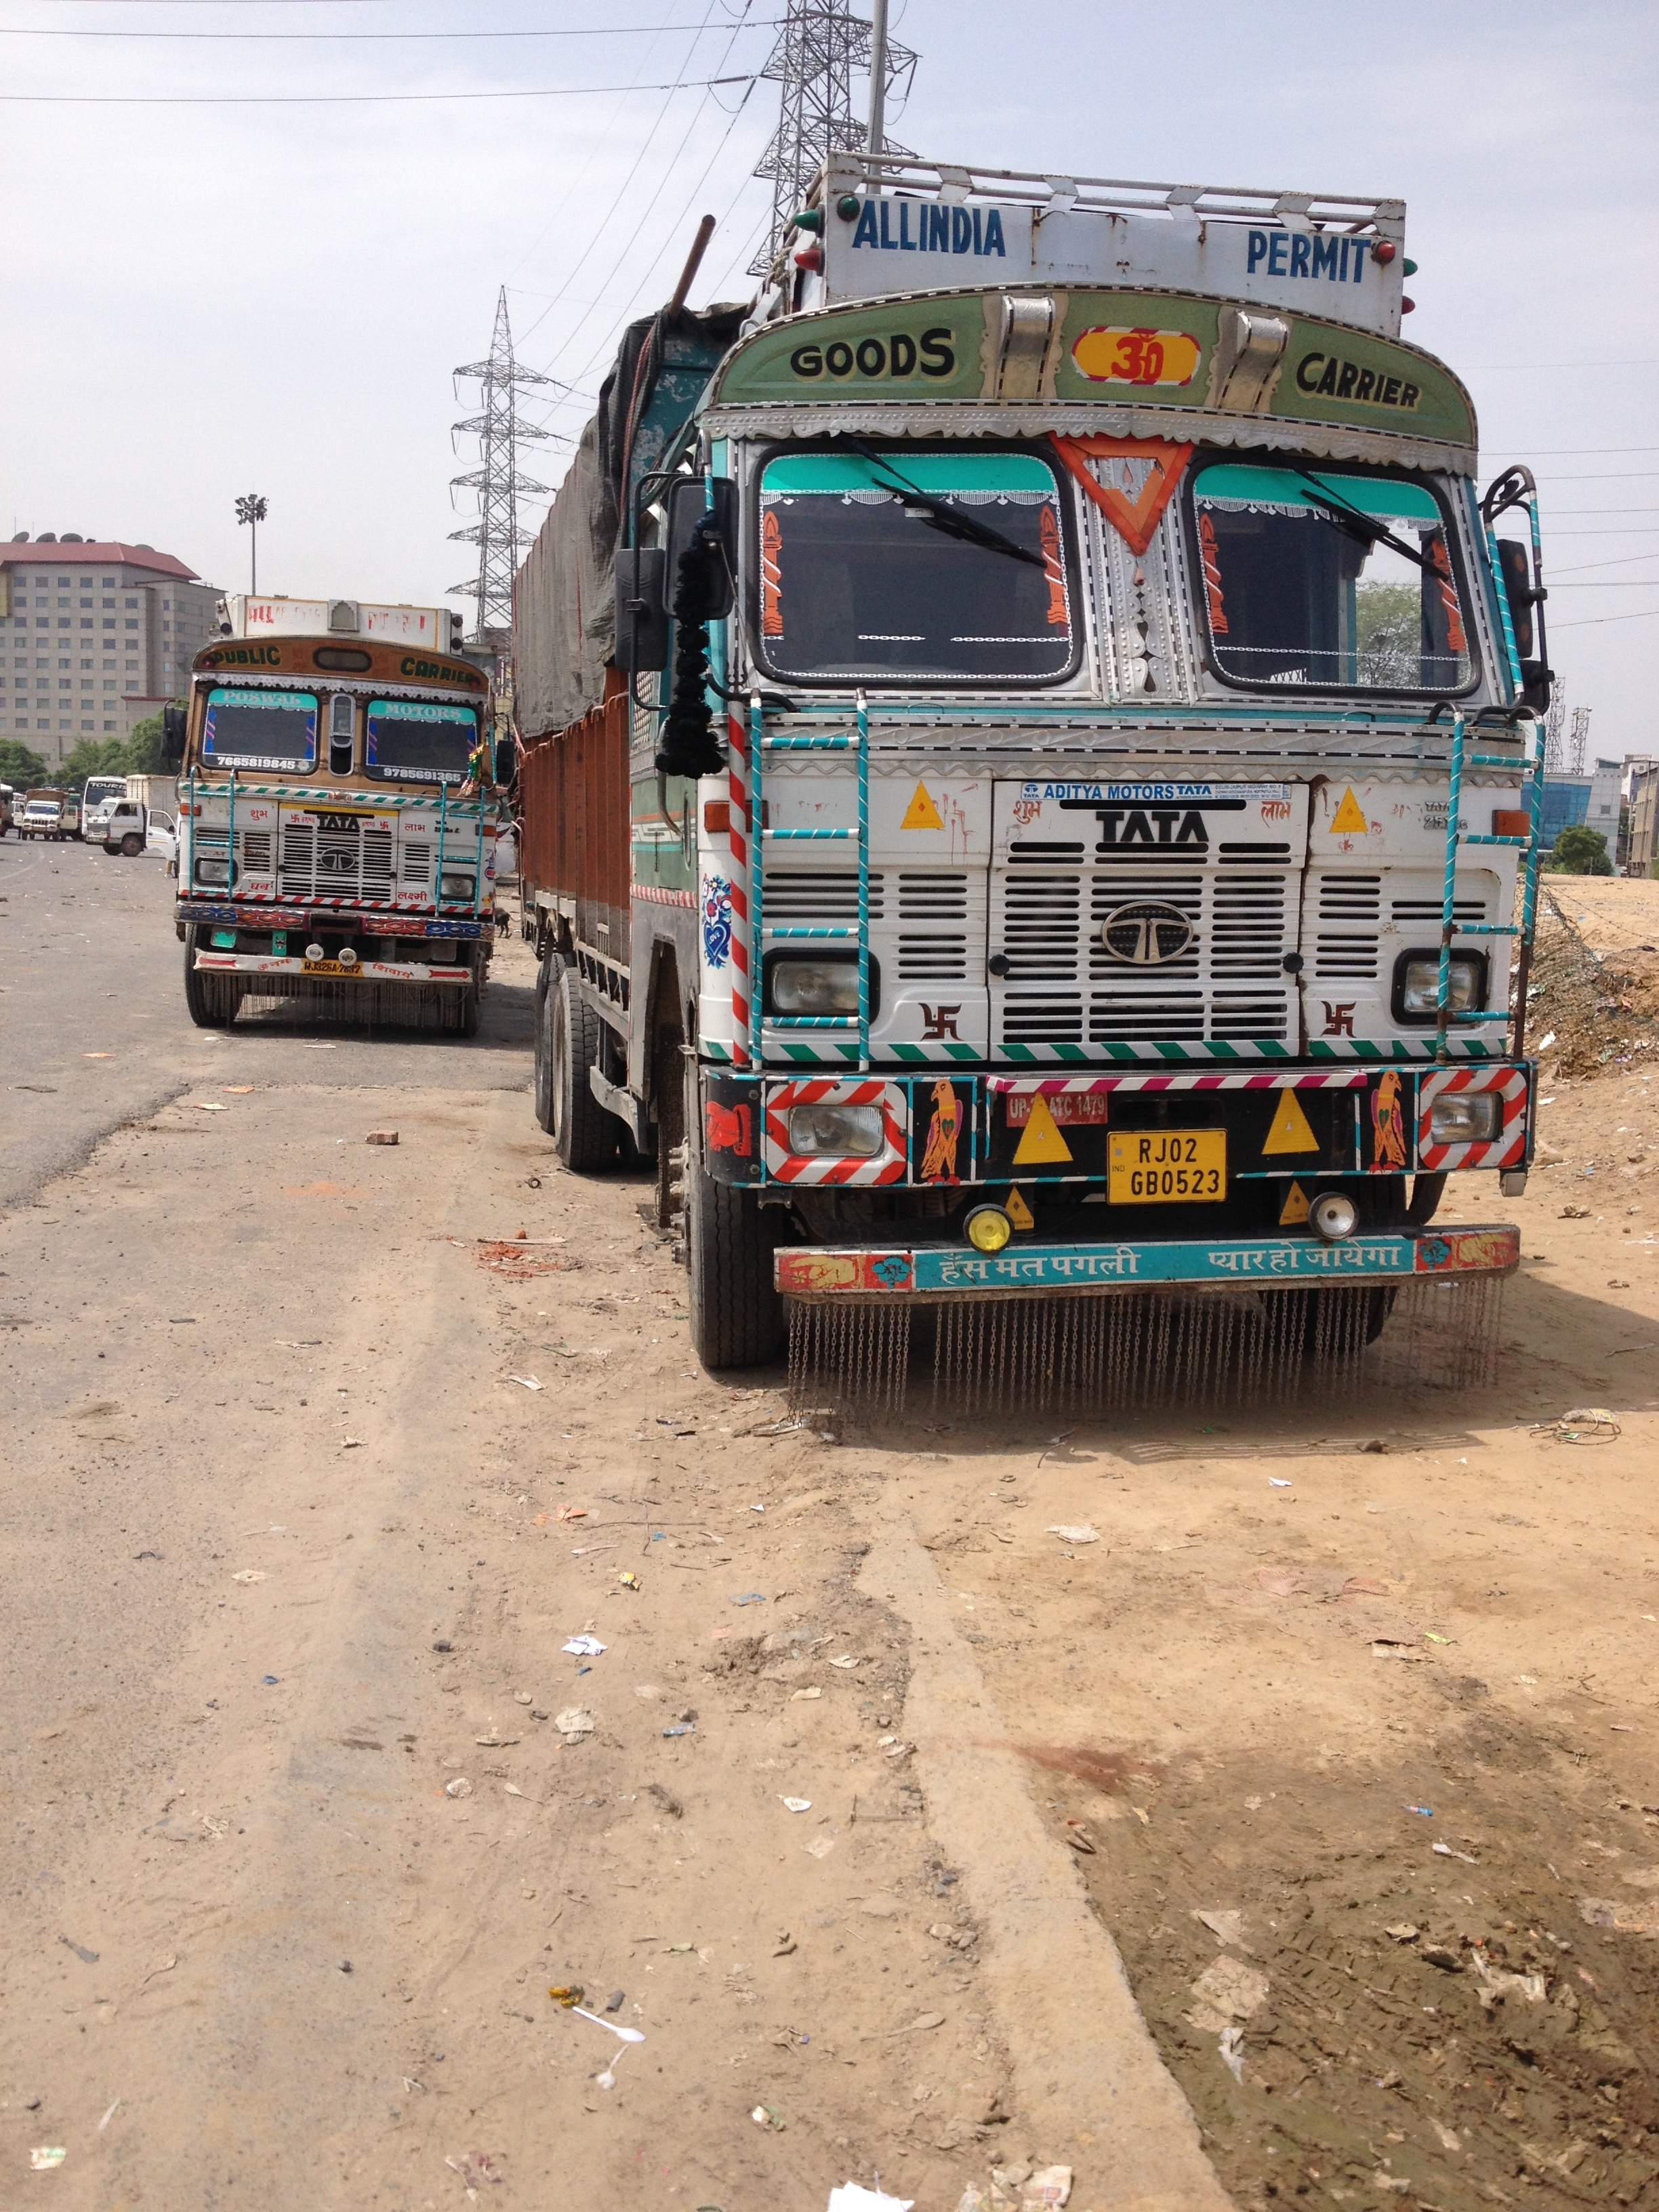 Trucks transport two thirds of India's freight. (A. Pasricha/VOA)